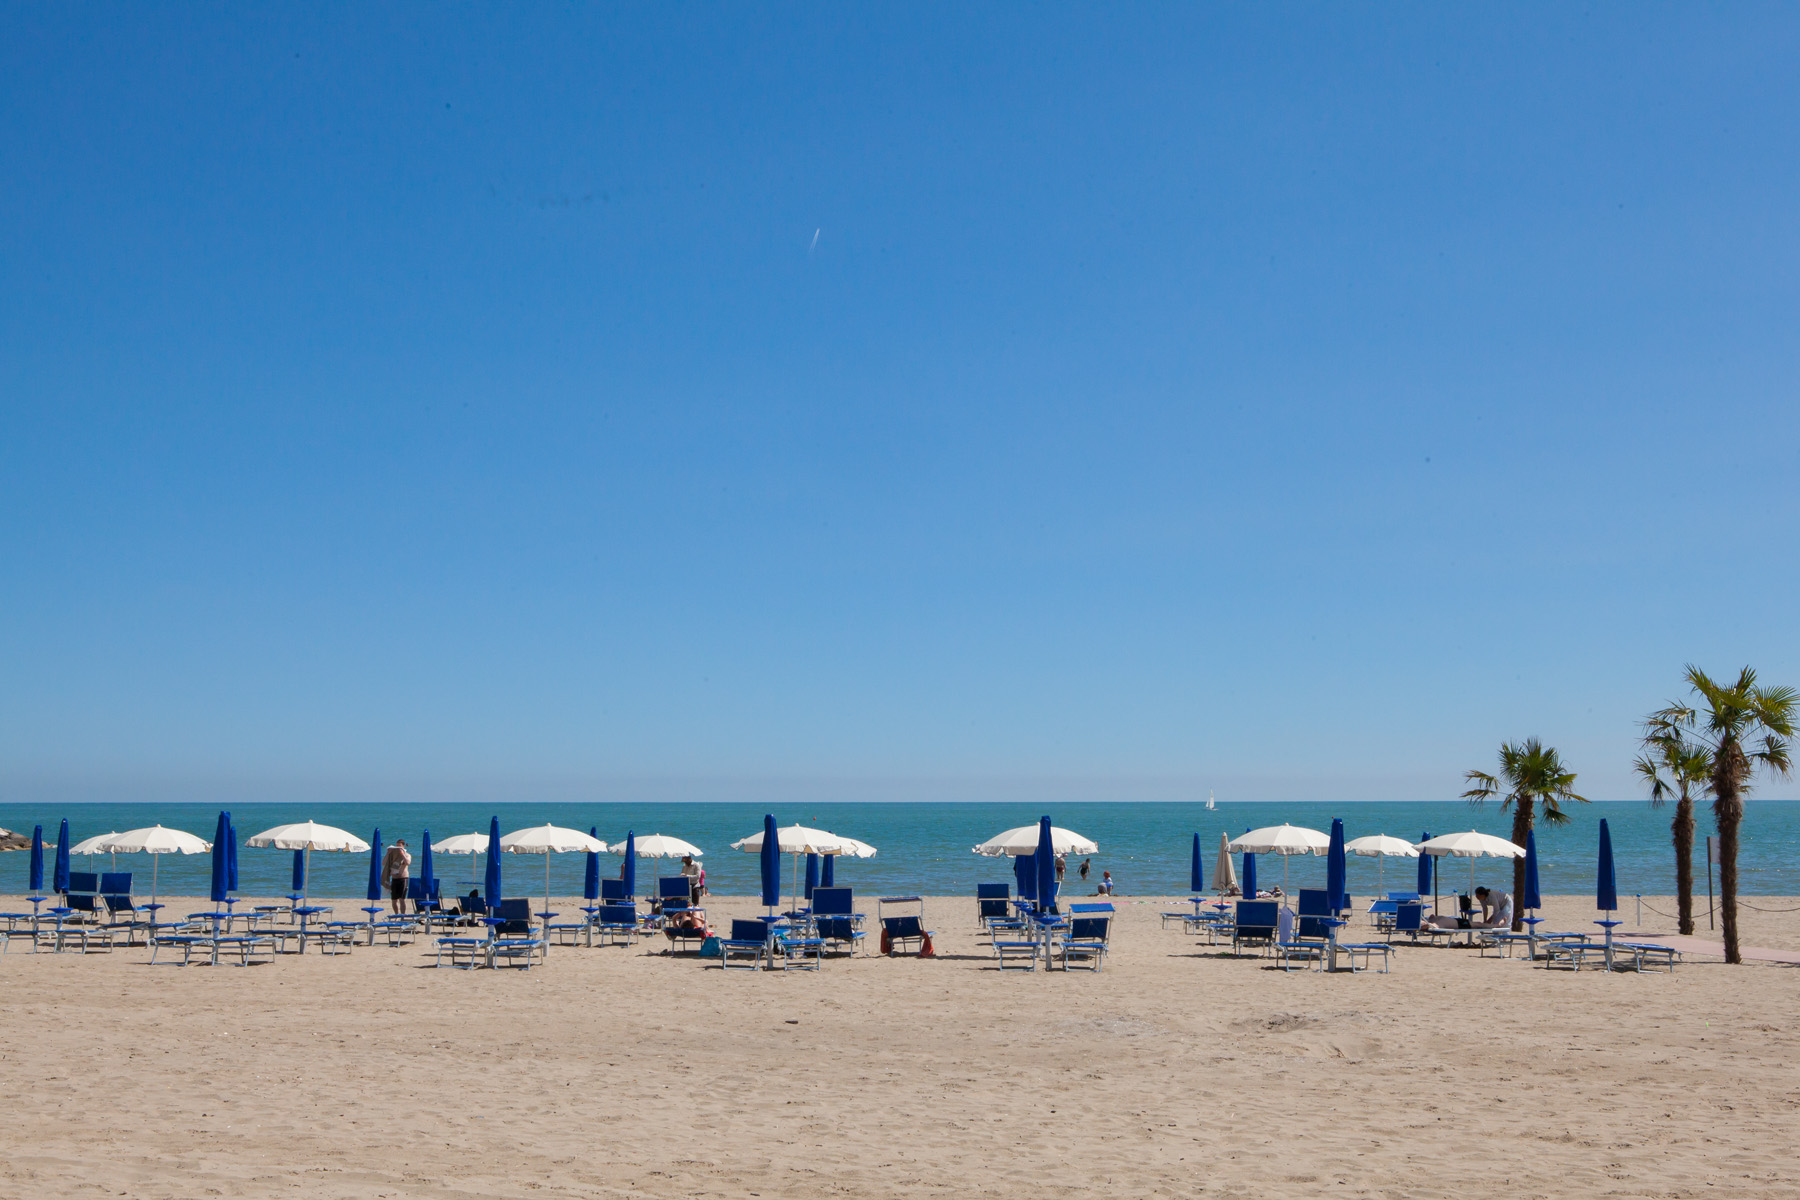 Ca Pasquali Village We Are Waiting For You On The Beach Ca Pasquali Village